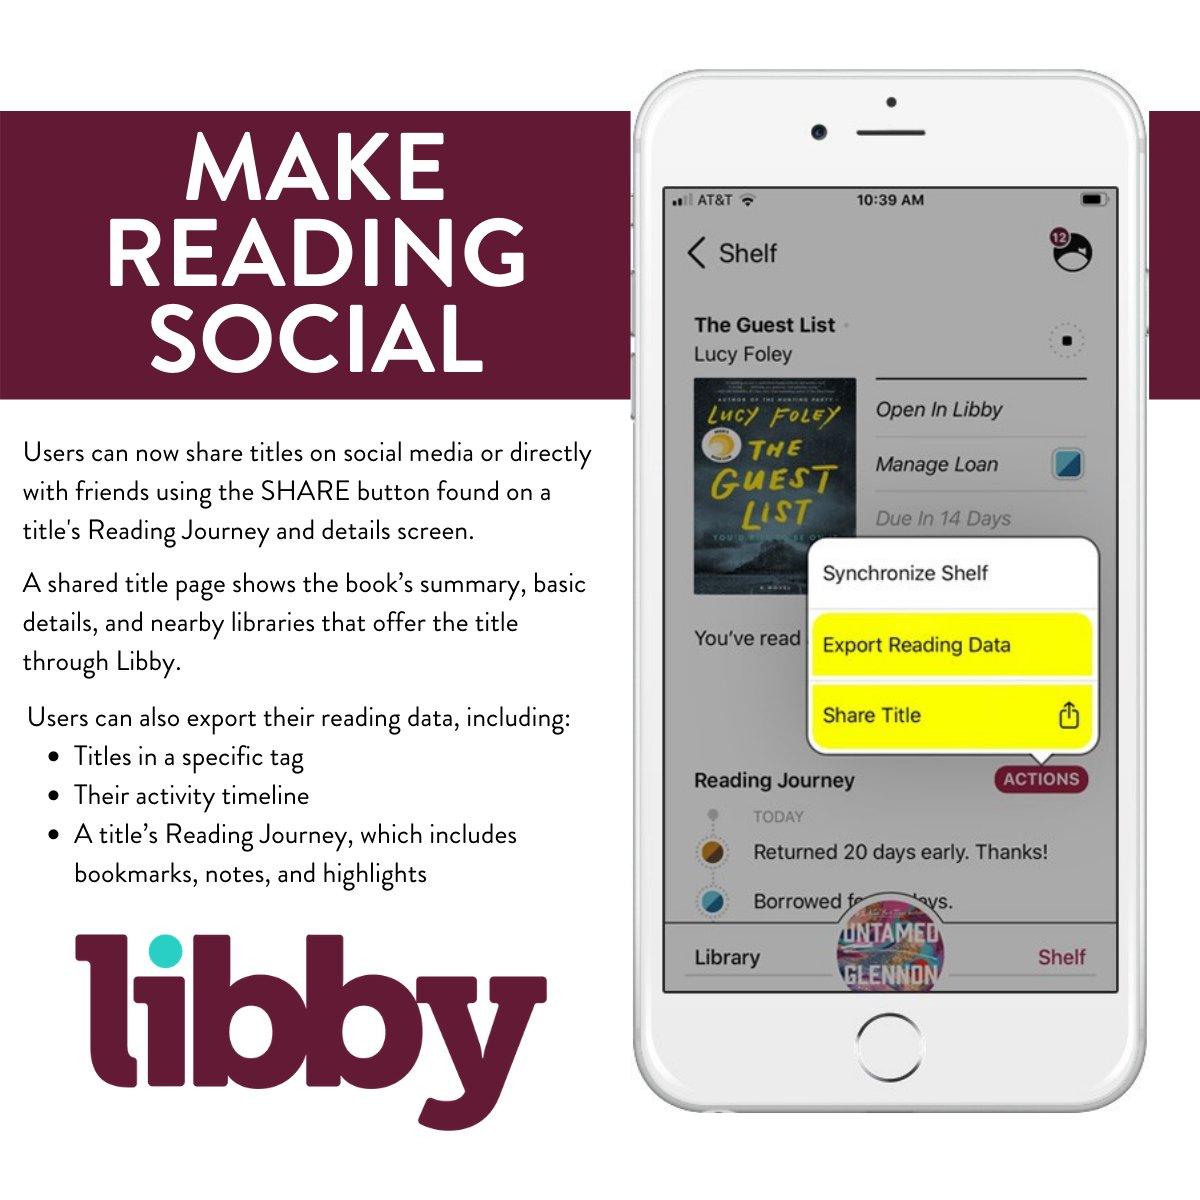 Now you can keep your friends updated on what you are reading with just one button! Start reading with Libby: